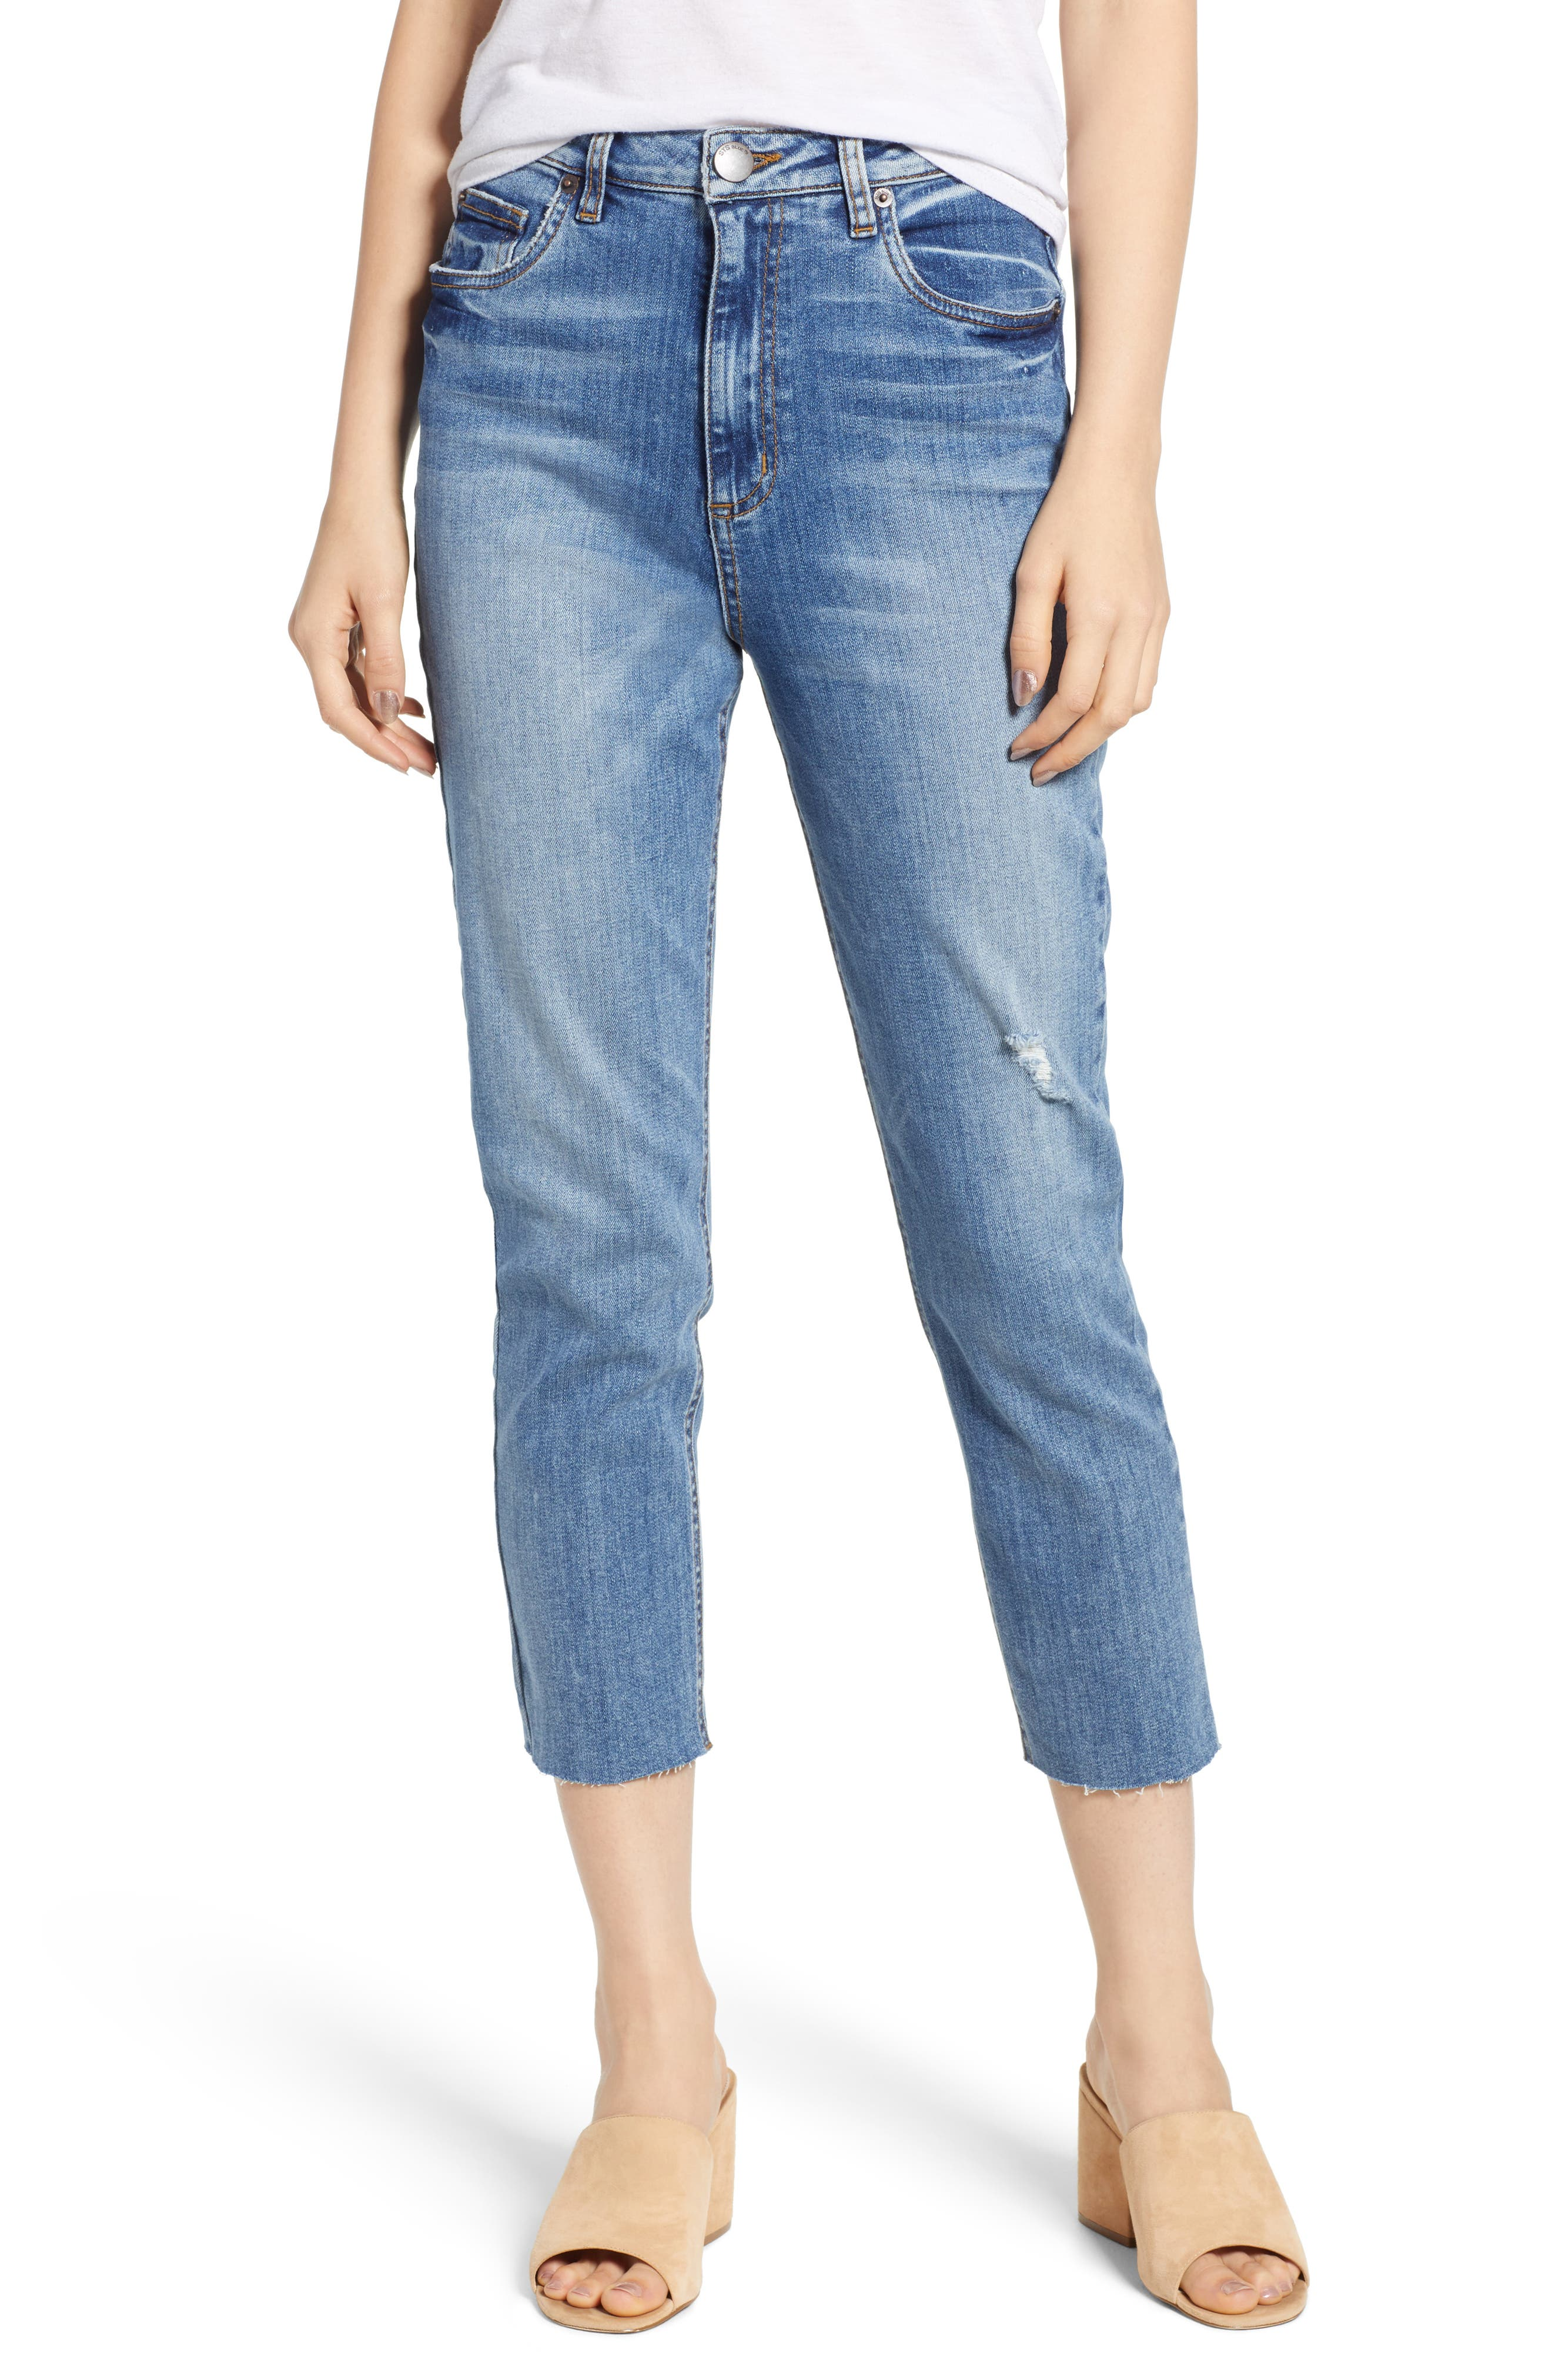 STS BLUE, Alicia High Waist Crop Mom Jeans, Main thumbnail 1, color, PROCTOR